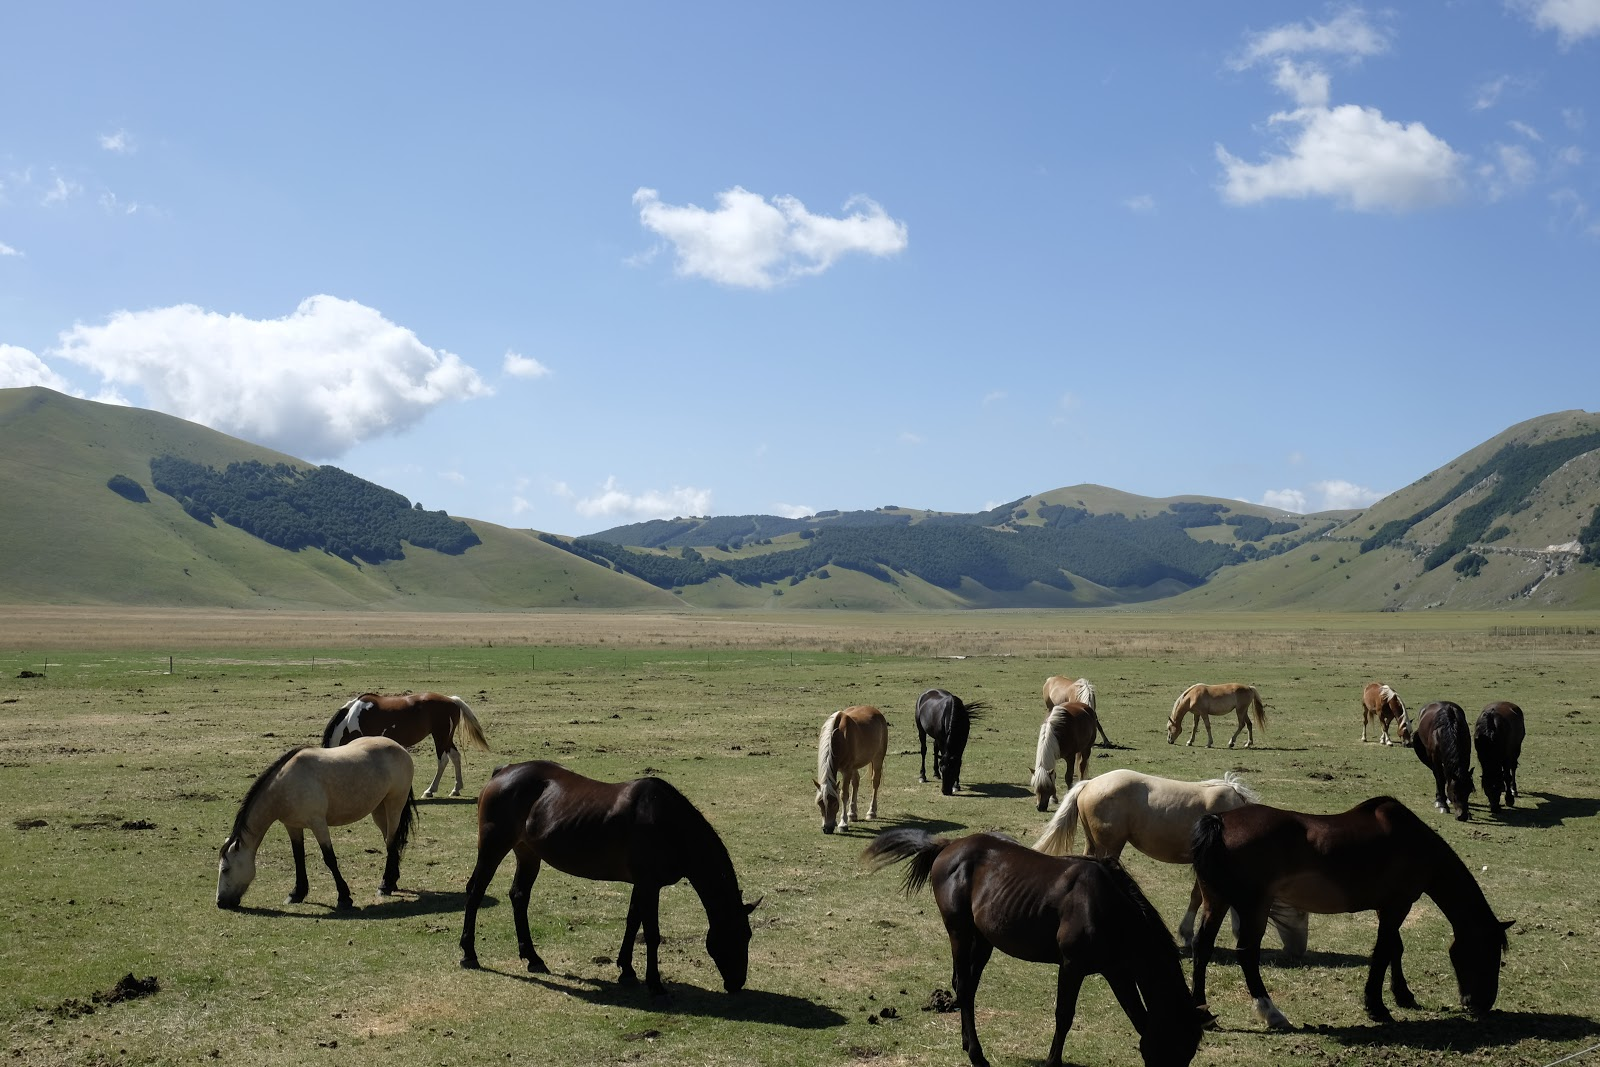 One of the views Marzena enjoyed on her sabbatical - horses on a plain.